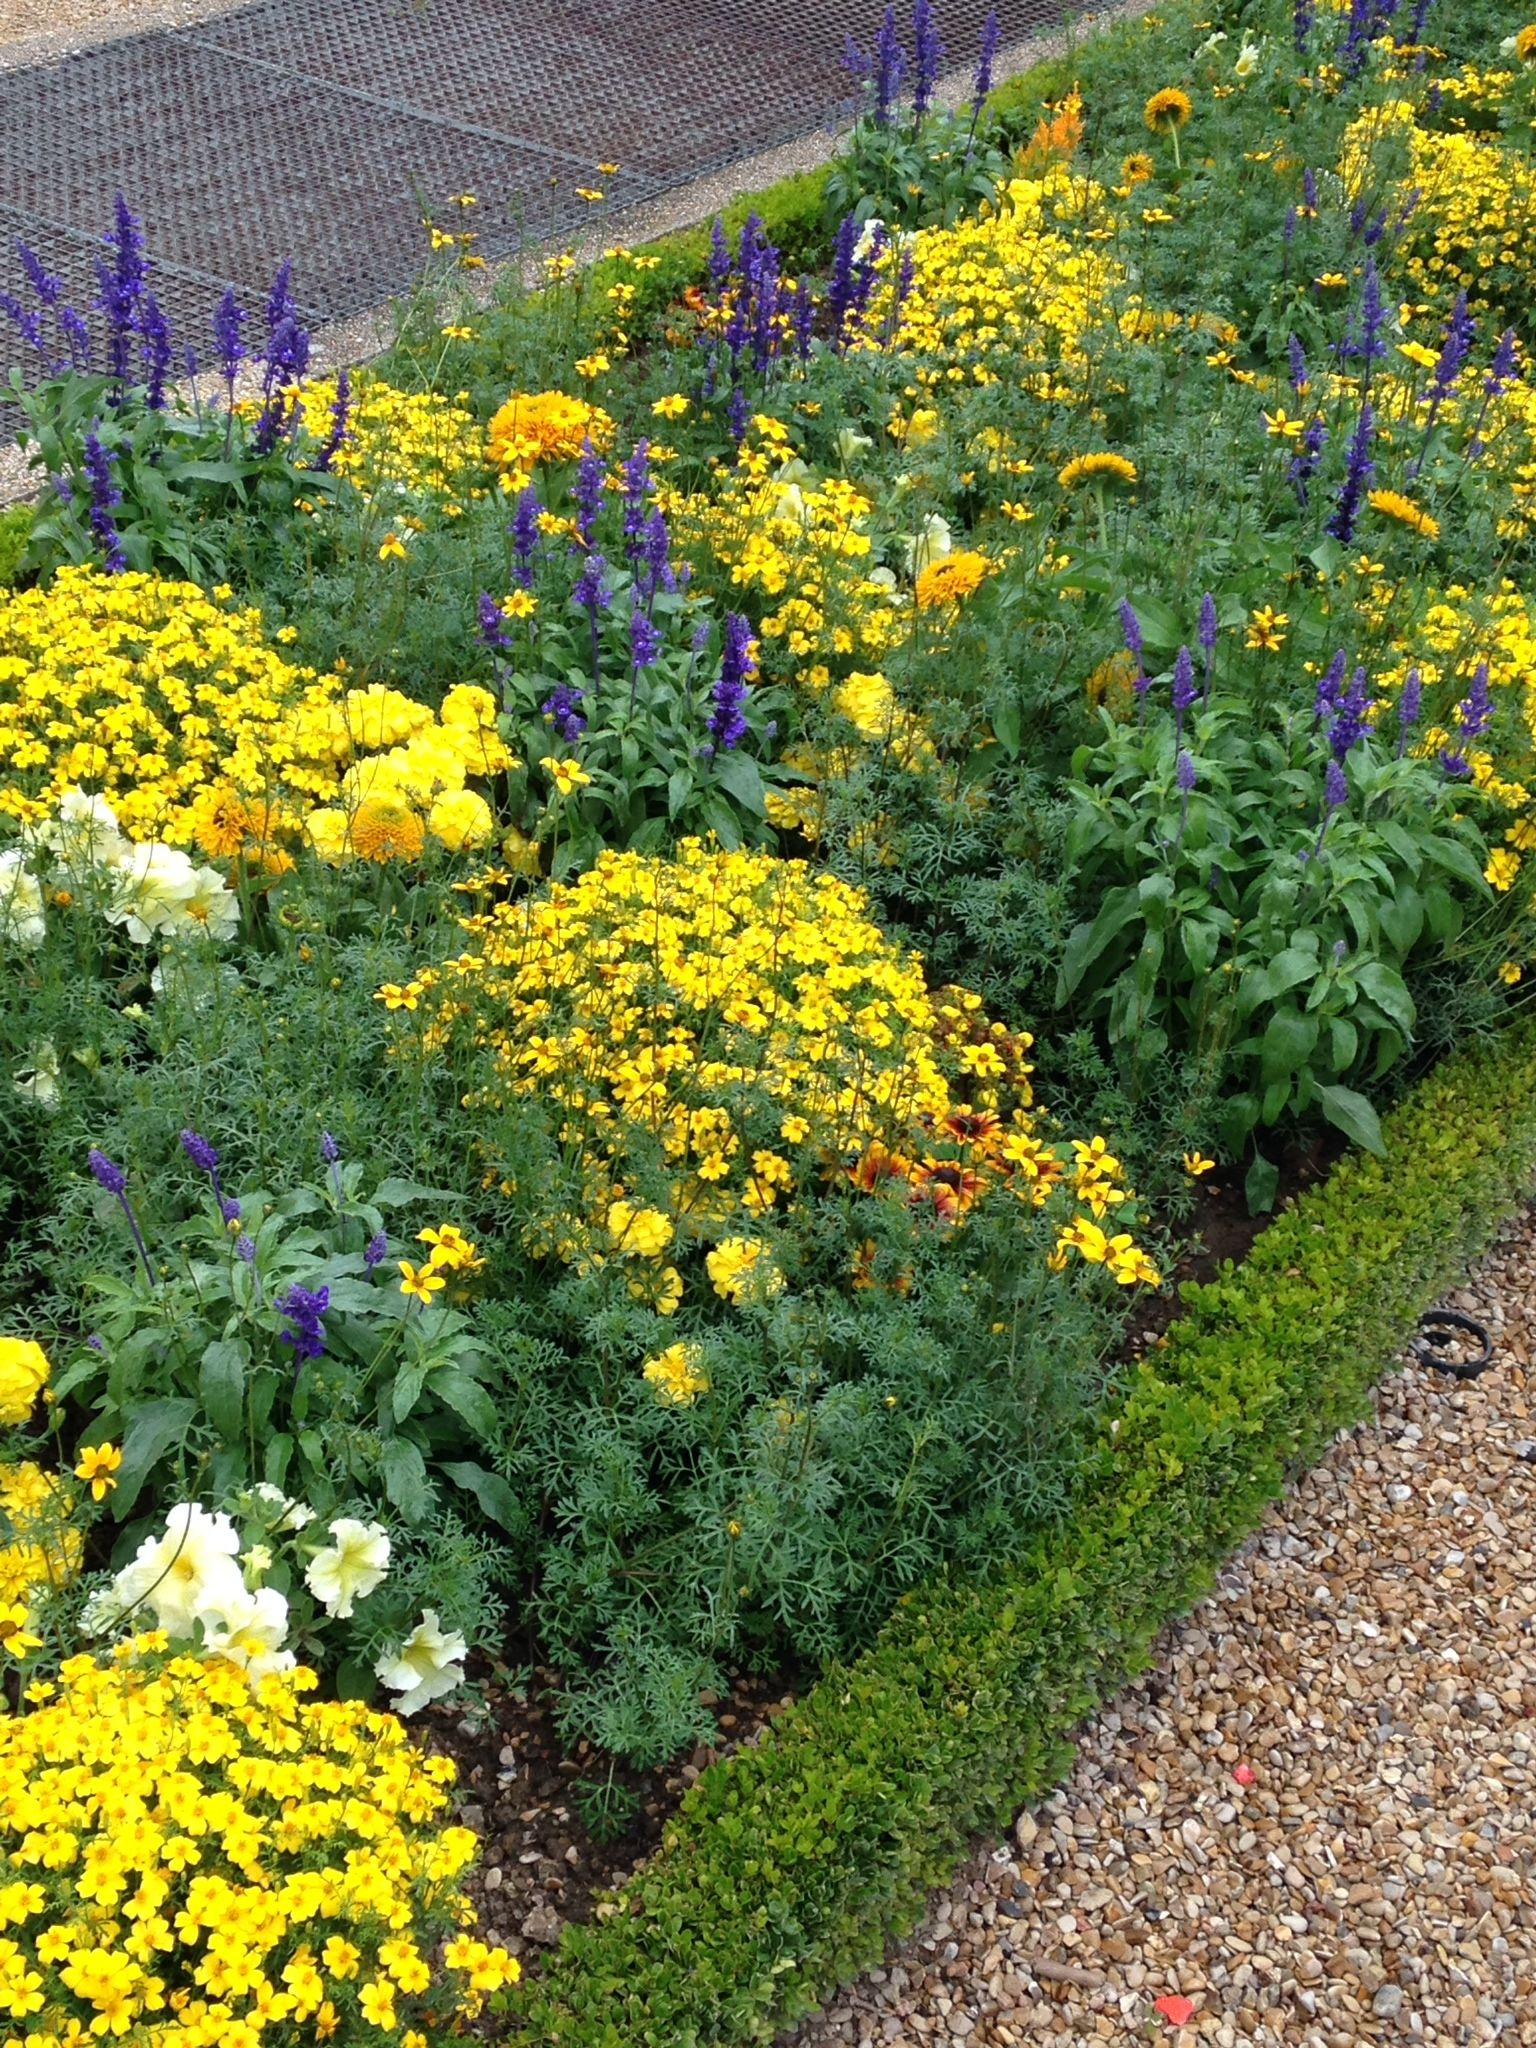 Luxembourg Gardens Perfect Combination Of Easy To Grow Plants Marigolds,